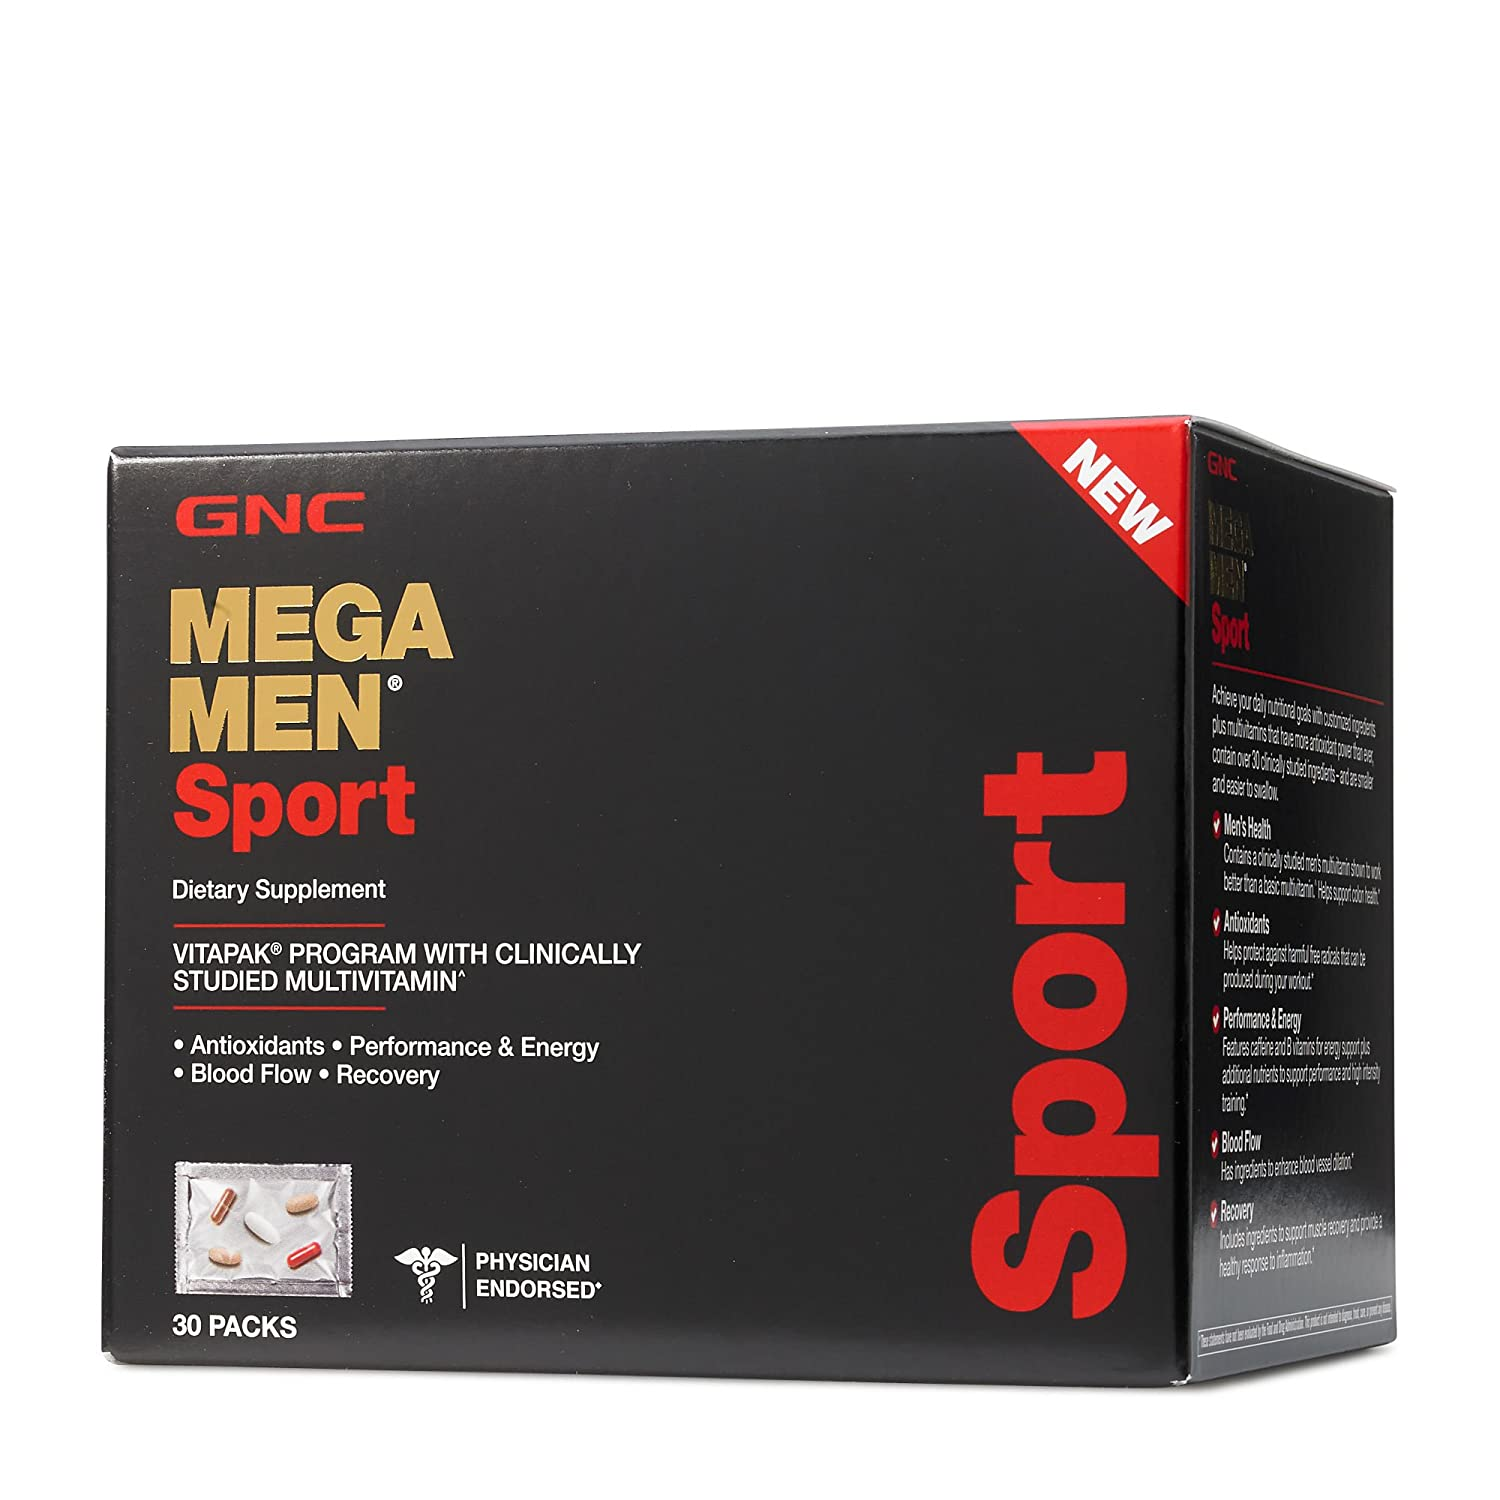 Gen x labs sports amp fitness performance kit 11 week program 4 - Amazon Com Gnc Mega Men Sport Capsules 30 Count Health Personal Care